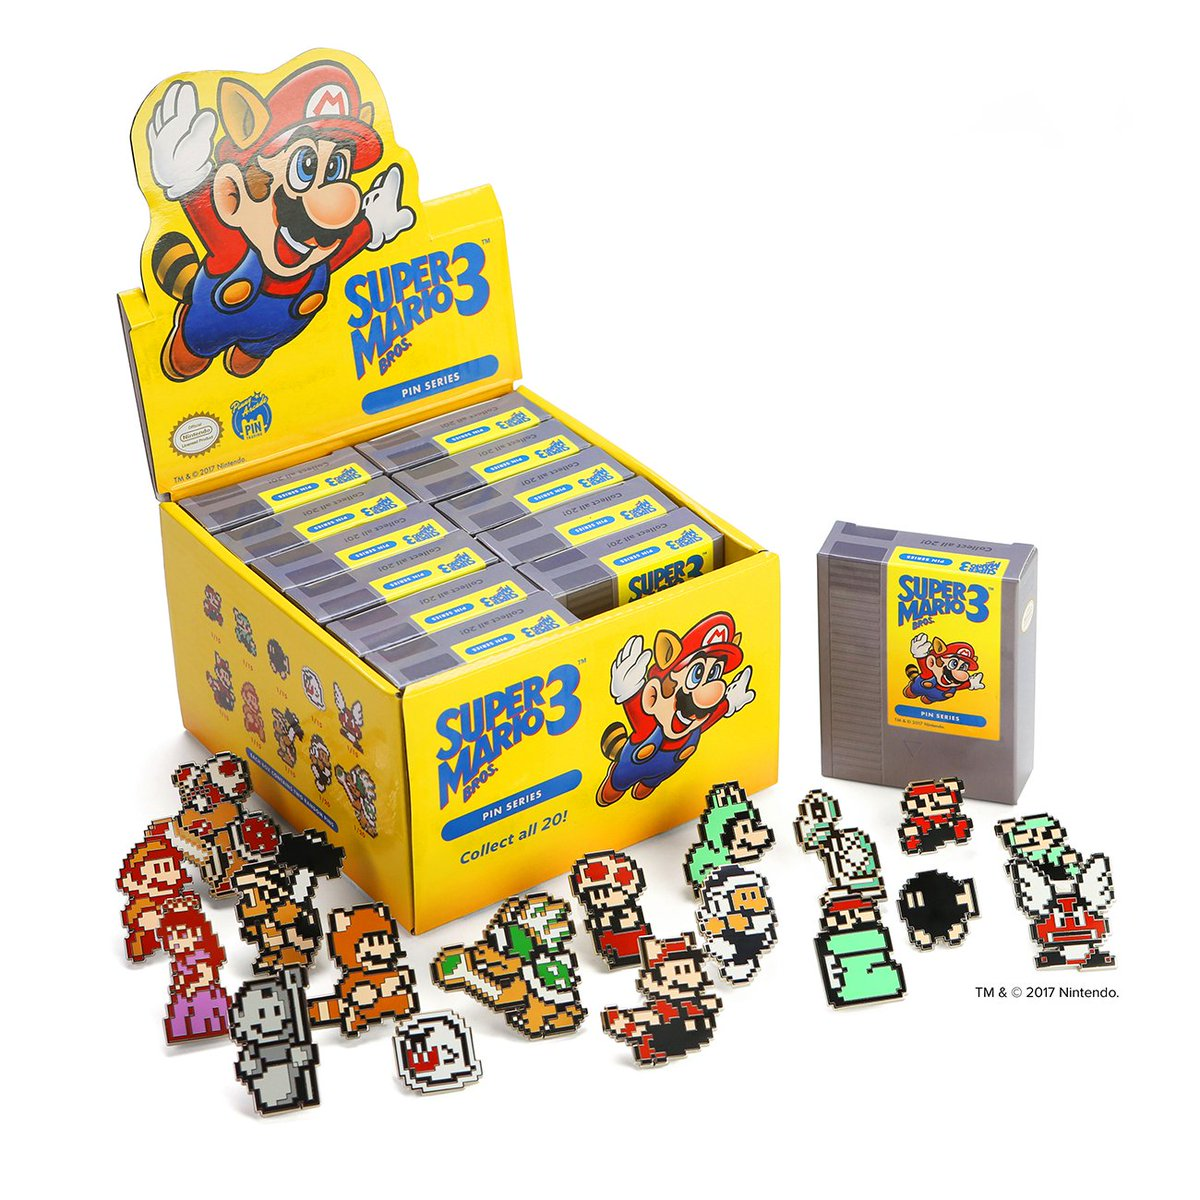 Pinny Arcade On Twitter Our Super Mario Bros 3 Blind Box Pins Overall Set Get Your Boxes And Cases Now Https Storepenny Arcadecom Products Nintendo Supermariopic Btdjdi0bwl